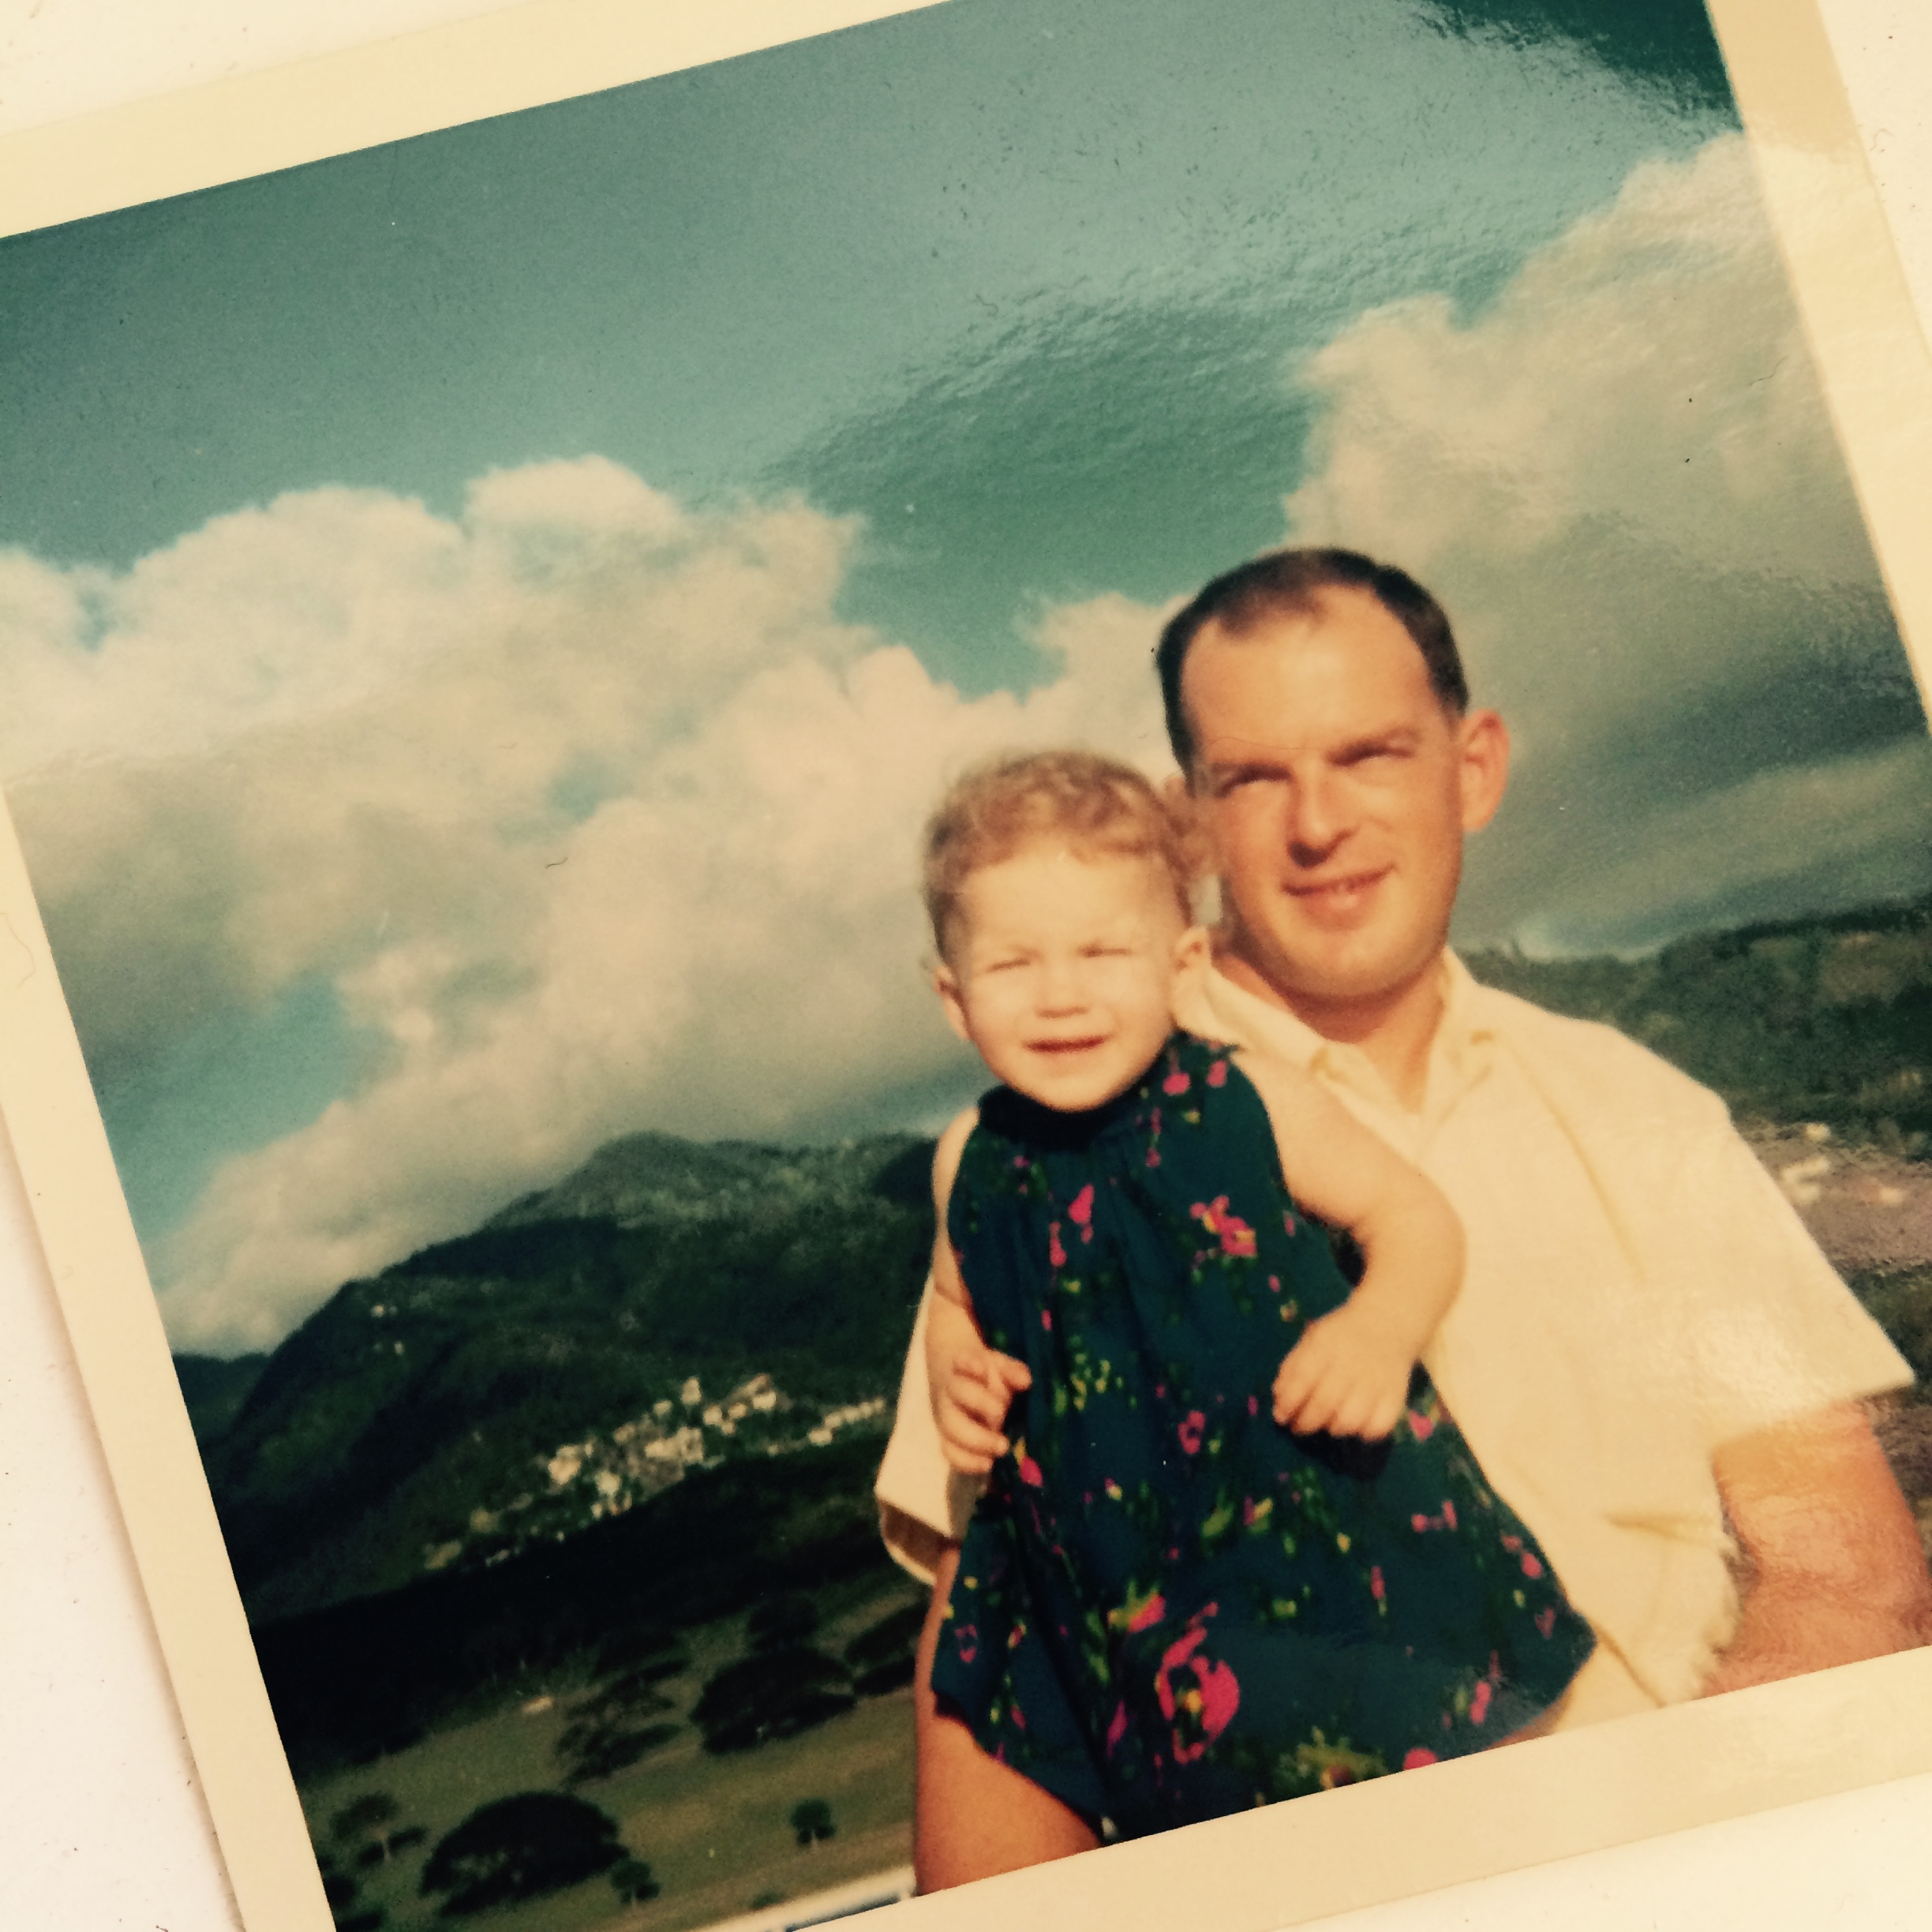 me and dad when we lived in Hawaii